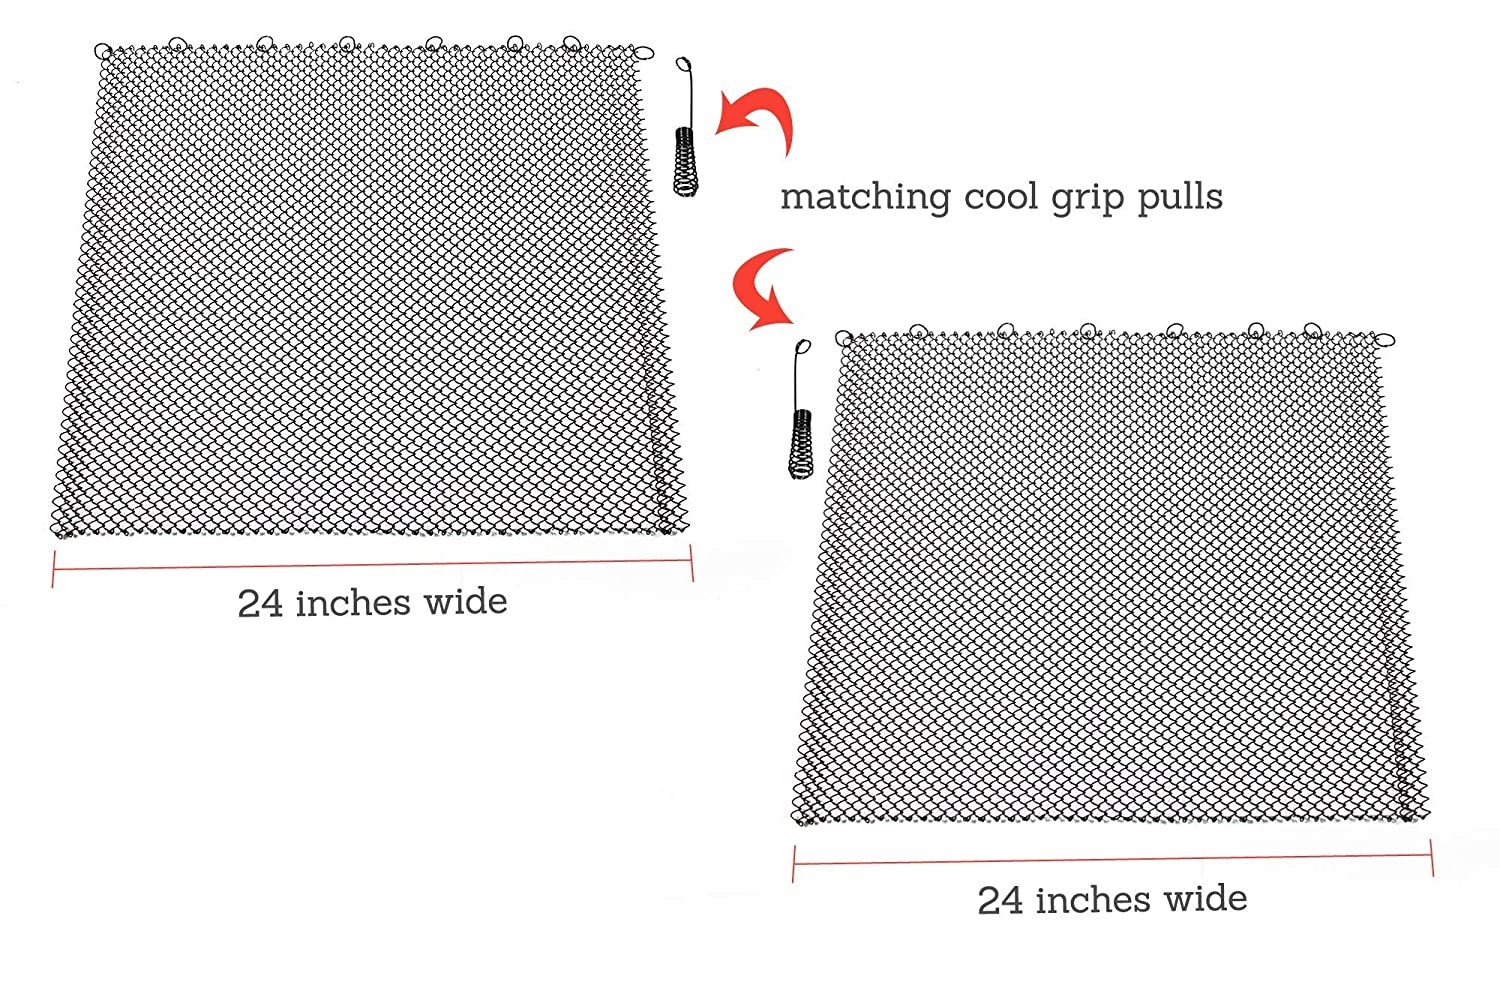 Enhance the Style of Your Fireplace with a Condar Mesh Screen the Fireplace Screen Experts 9-29 each 24 Wide 29 High each 24 Wide Fireplace Mesh Screen Curtain Includes 2 Panels